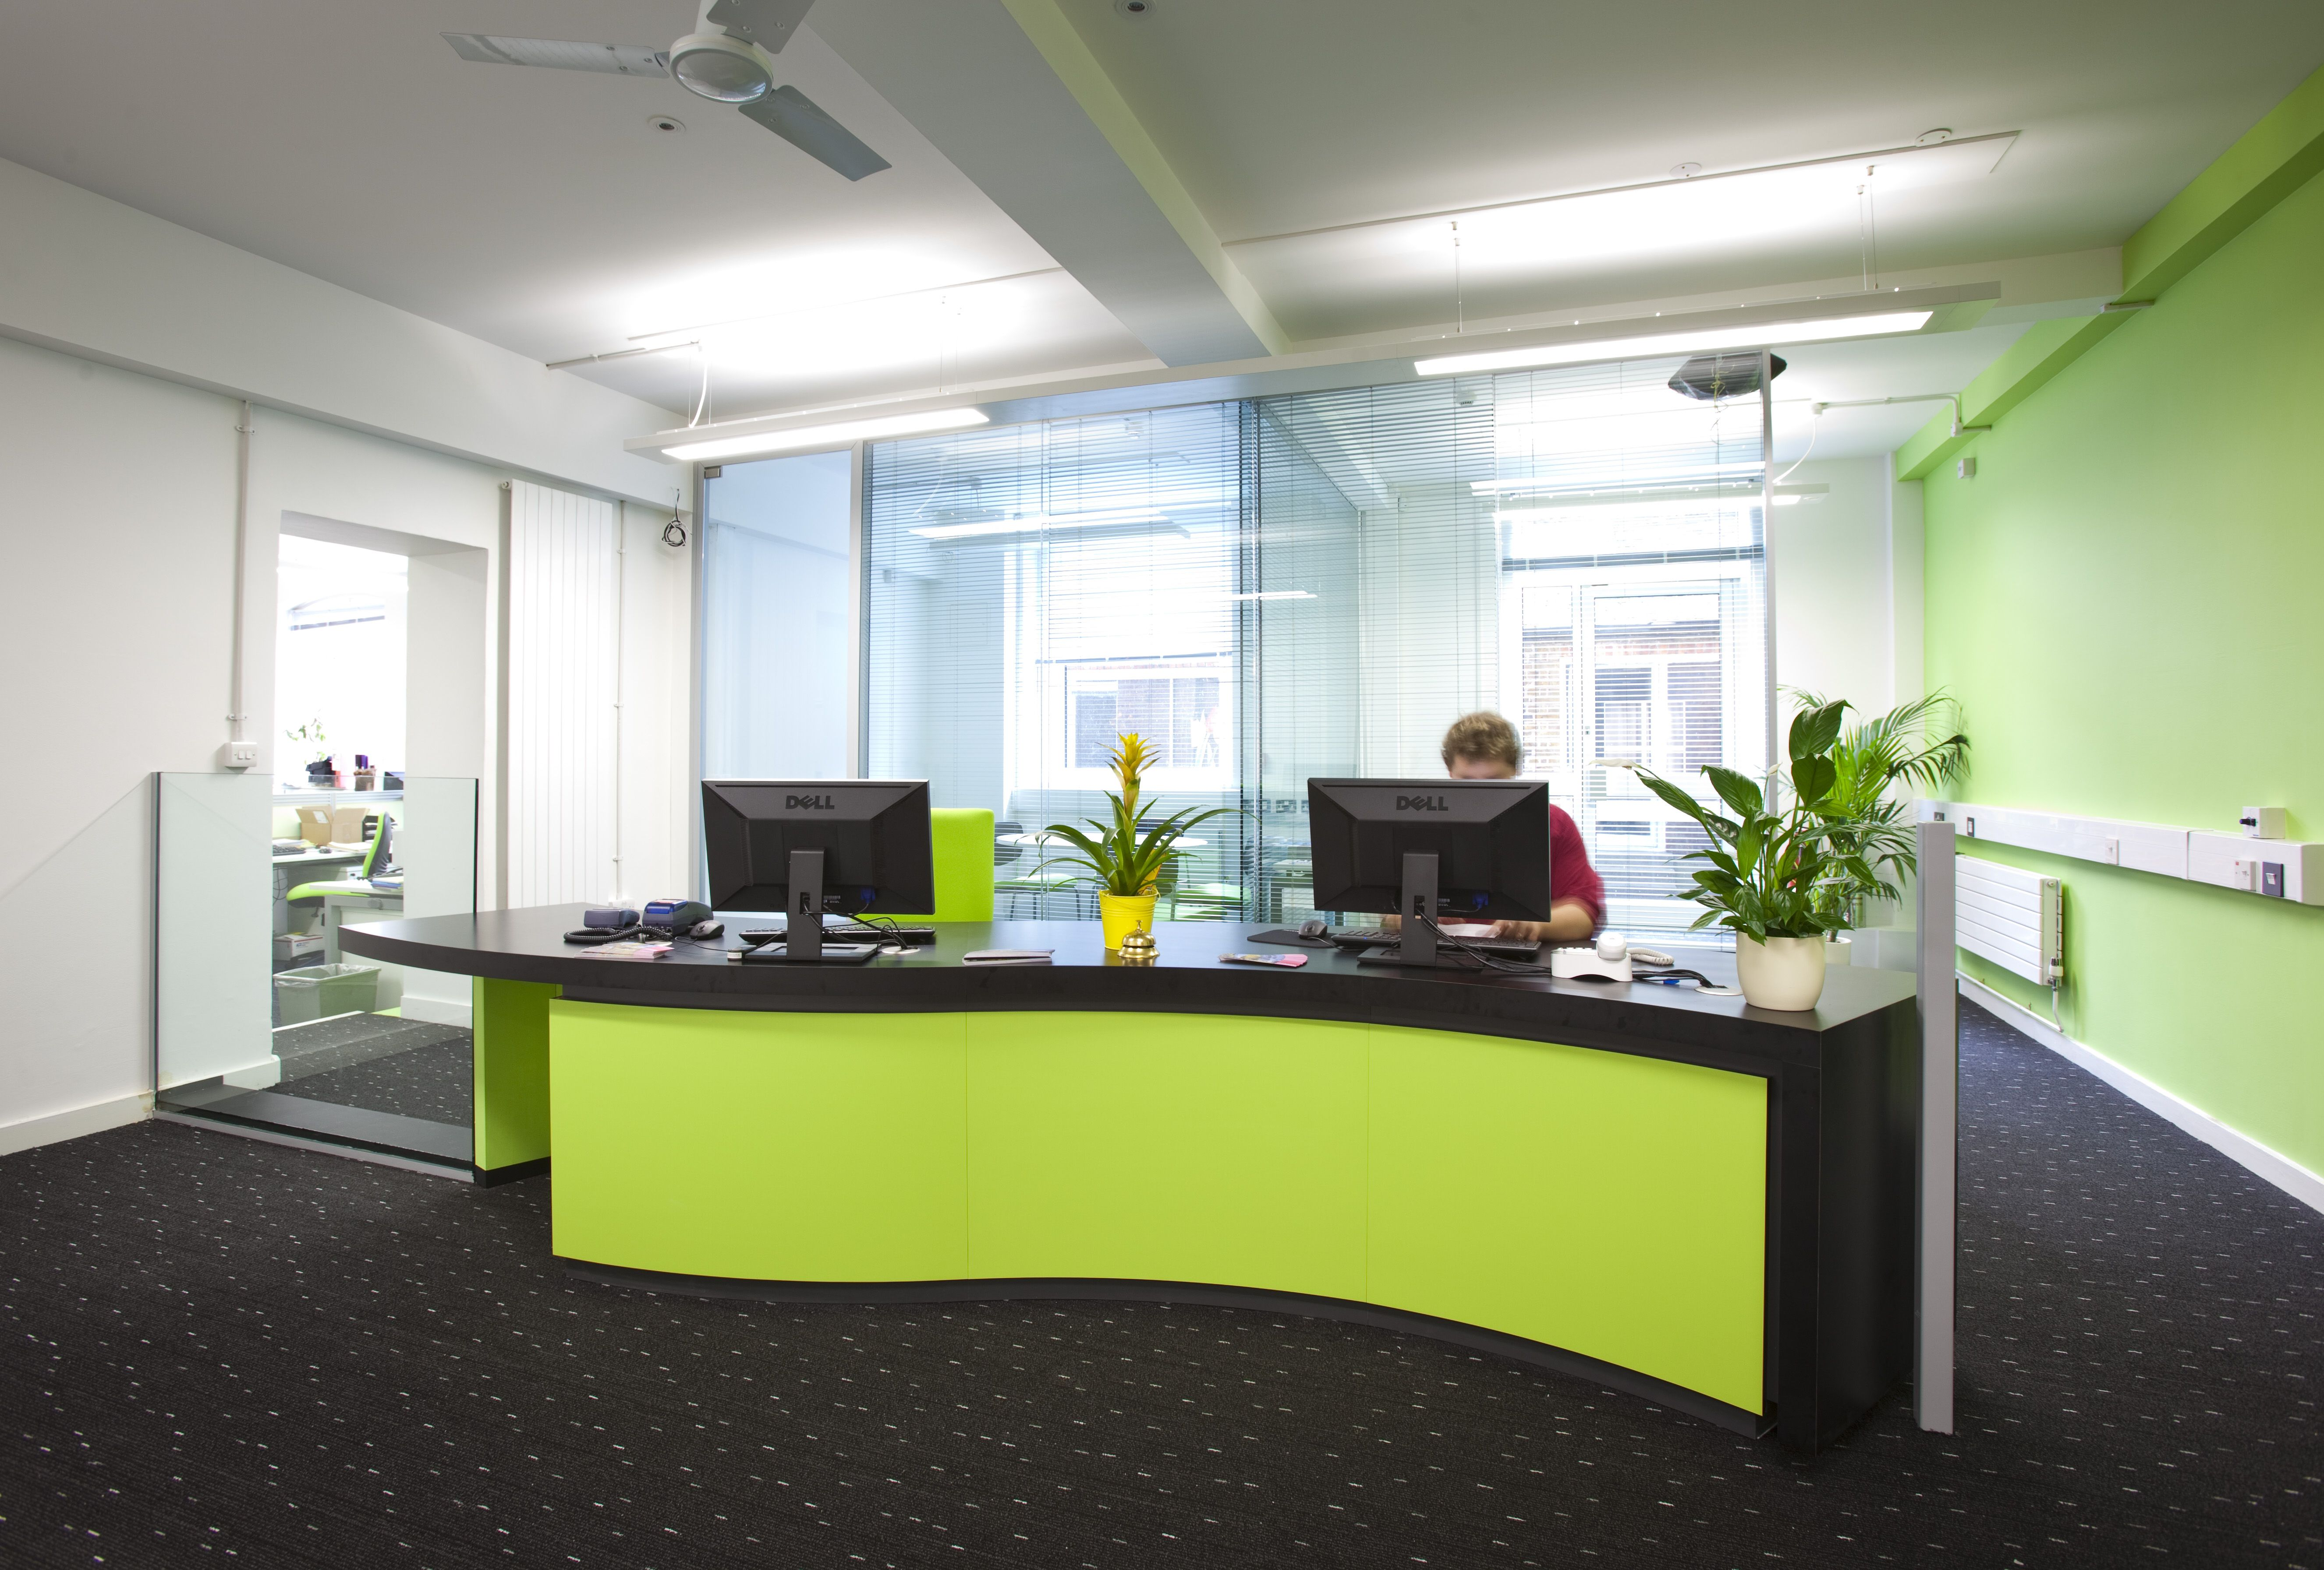 lime green office. Bespoke Reception Counter Installed In University Using Lime Green \u0026 Black Laminates. Office